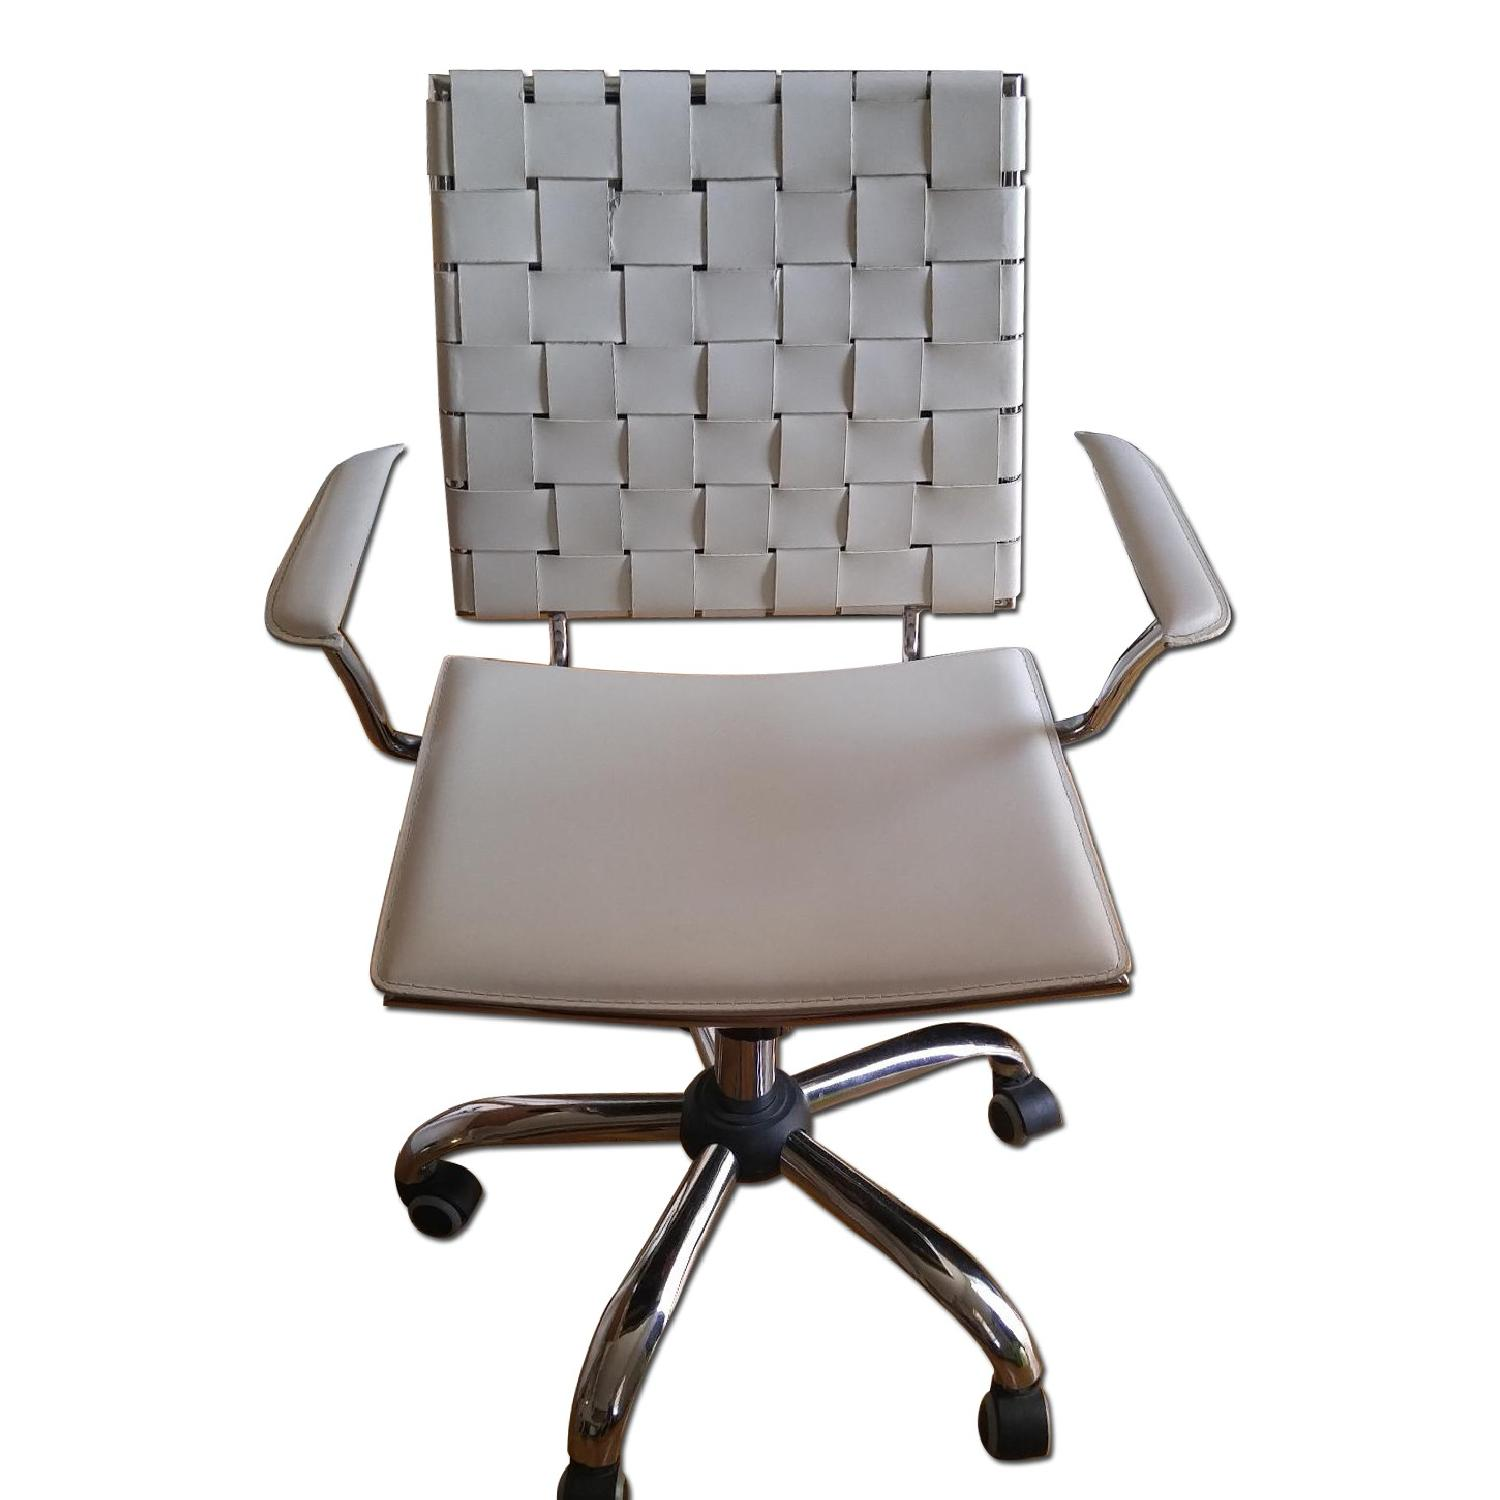 Italian Made White Leather & Chrome Office Chair - image-0